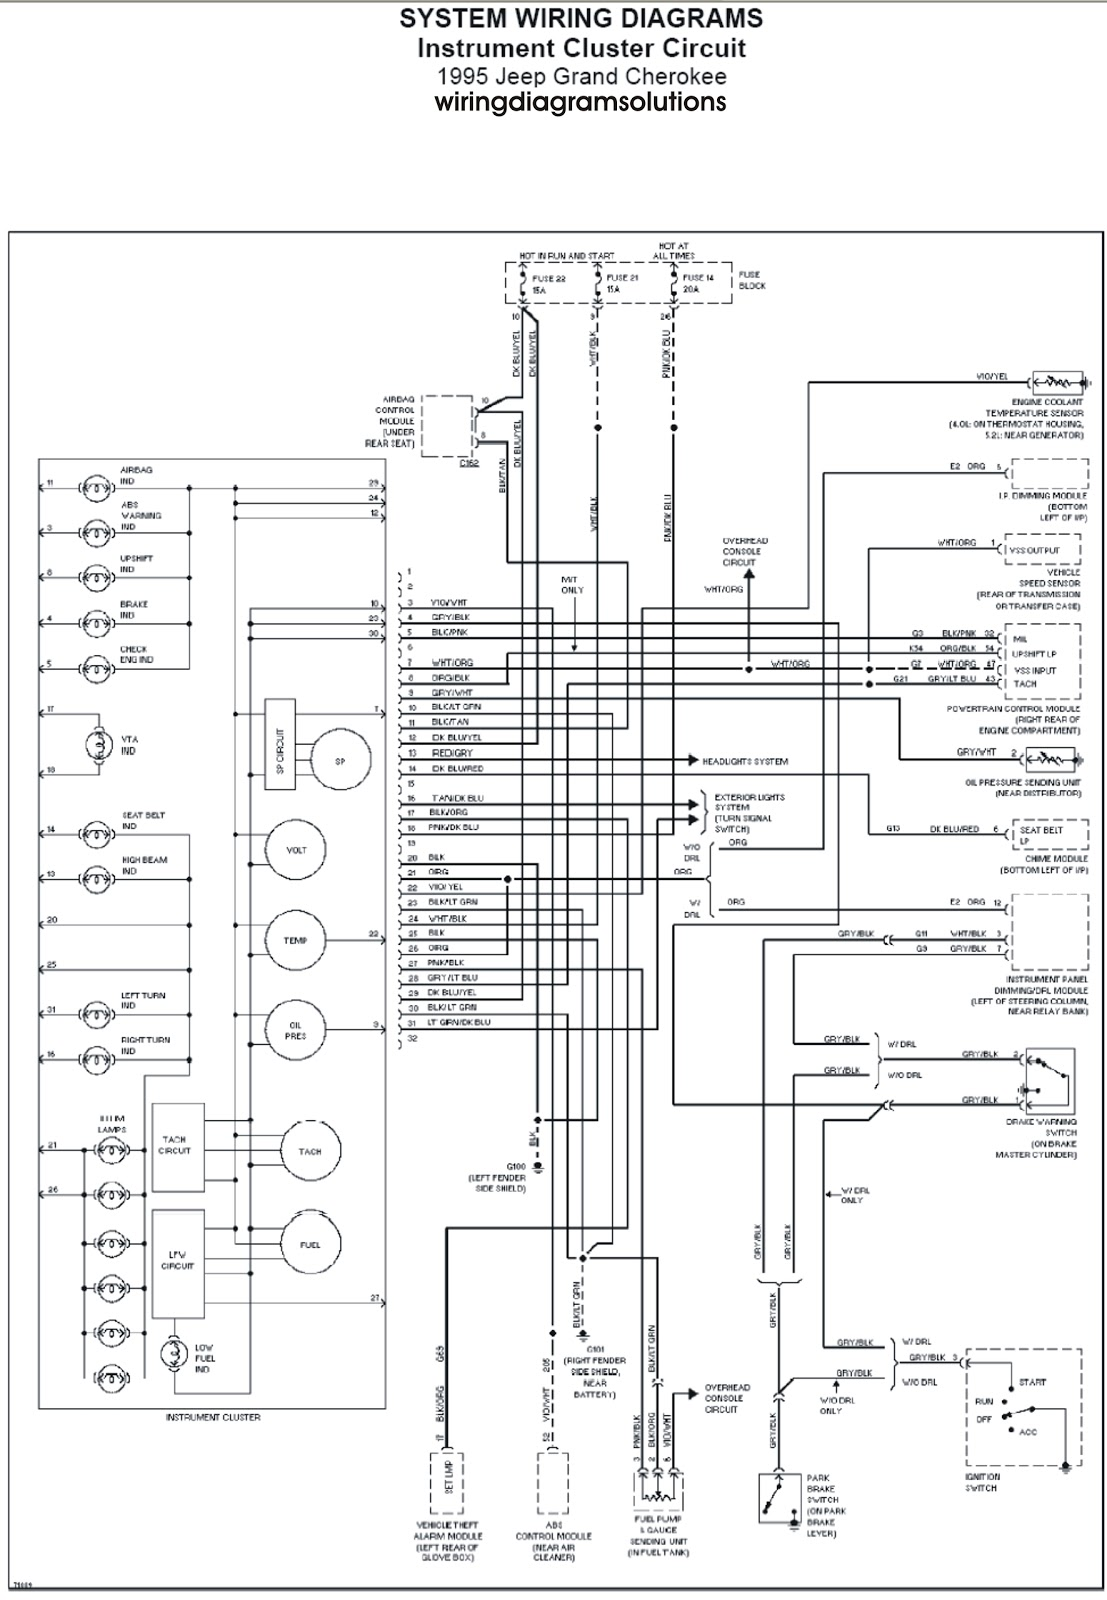 Ford E Series E150 Fuse Box Diagram in addition 97 Grand Cherokee Fuse Box Diagram furthermore 1998 Jeep Cherokee Fuse Diagram additionally Renix Spark Plug Diagram 114776 further 665771 1995 Jeep Grand Cherokee Laredo Radio Wiring Diagram. on 94 jeep grand cherokee laredo engine diagram